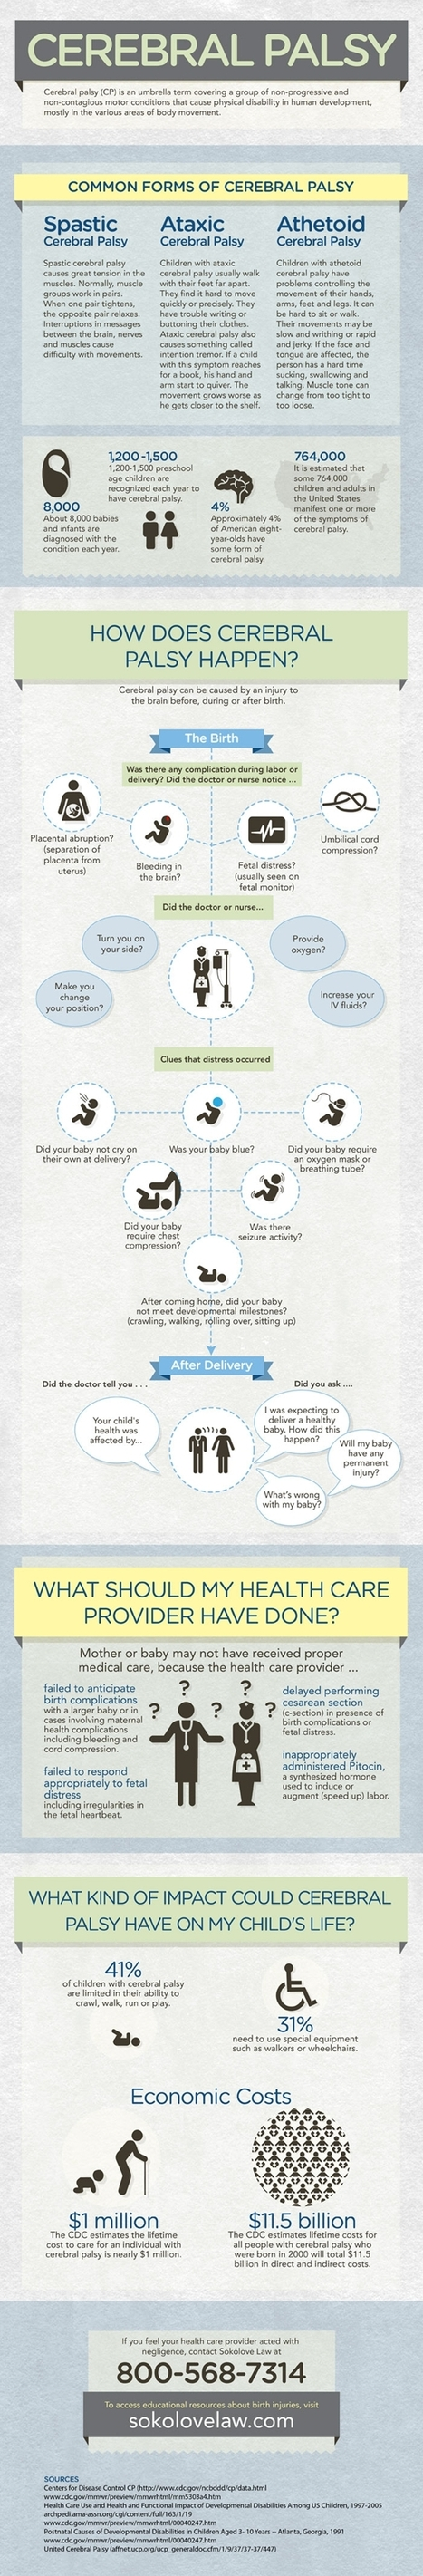 Cerebral Palsy Infographic | Cerebral Palsy News | Scoop.it